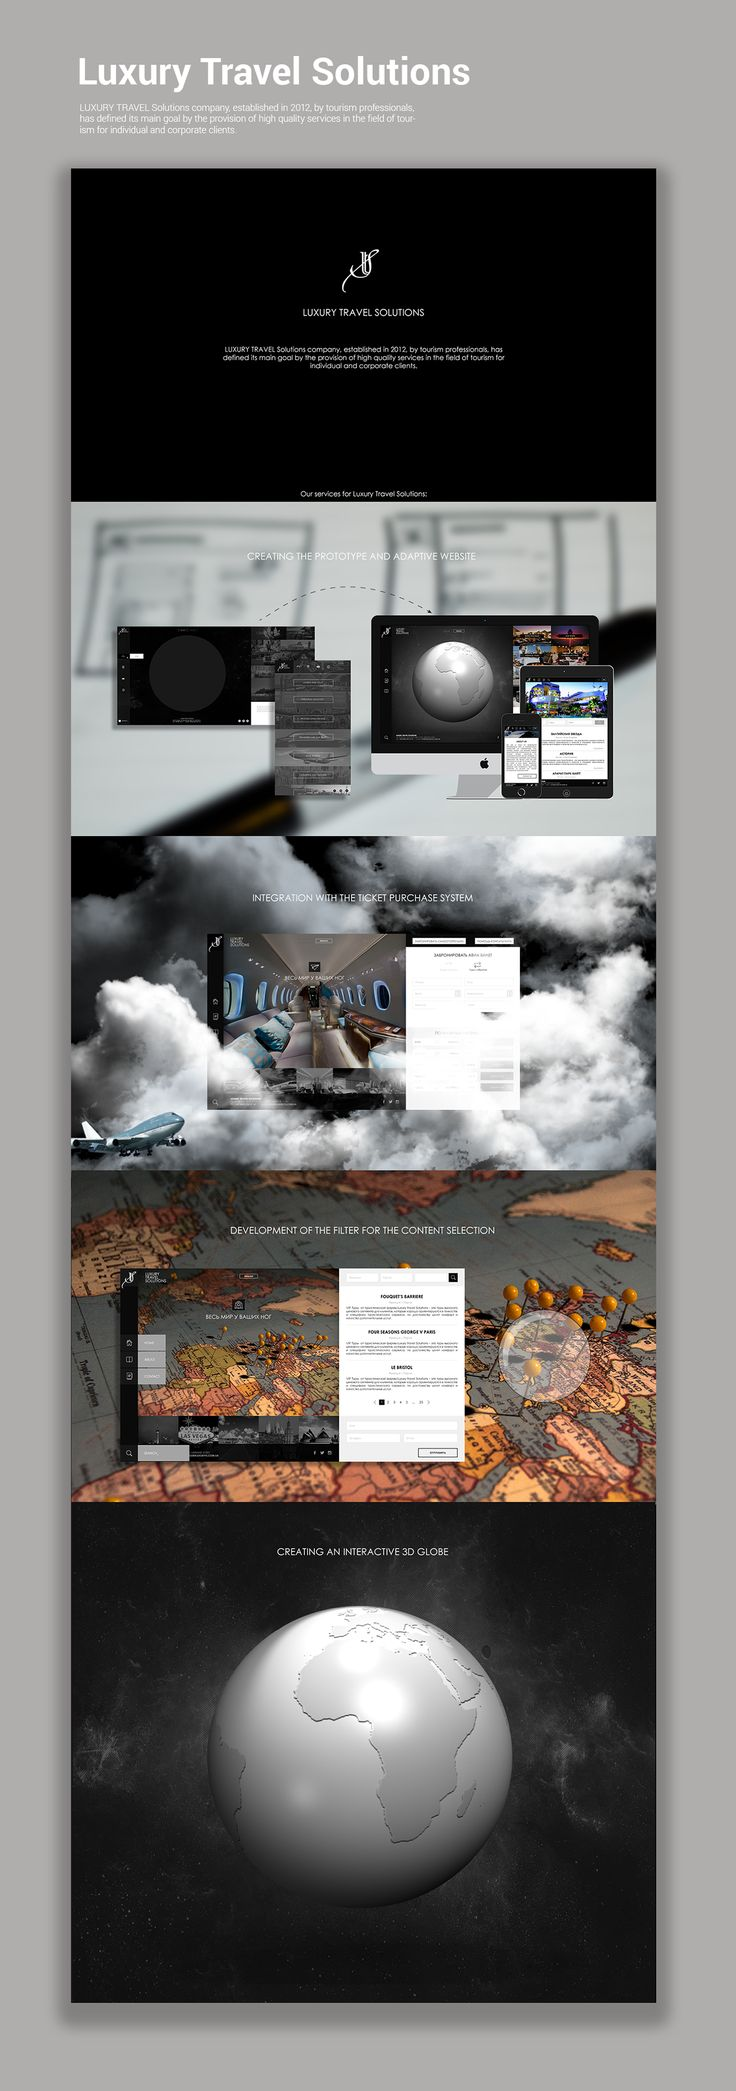 Luxury Travel Solutions on Behance